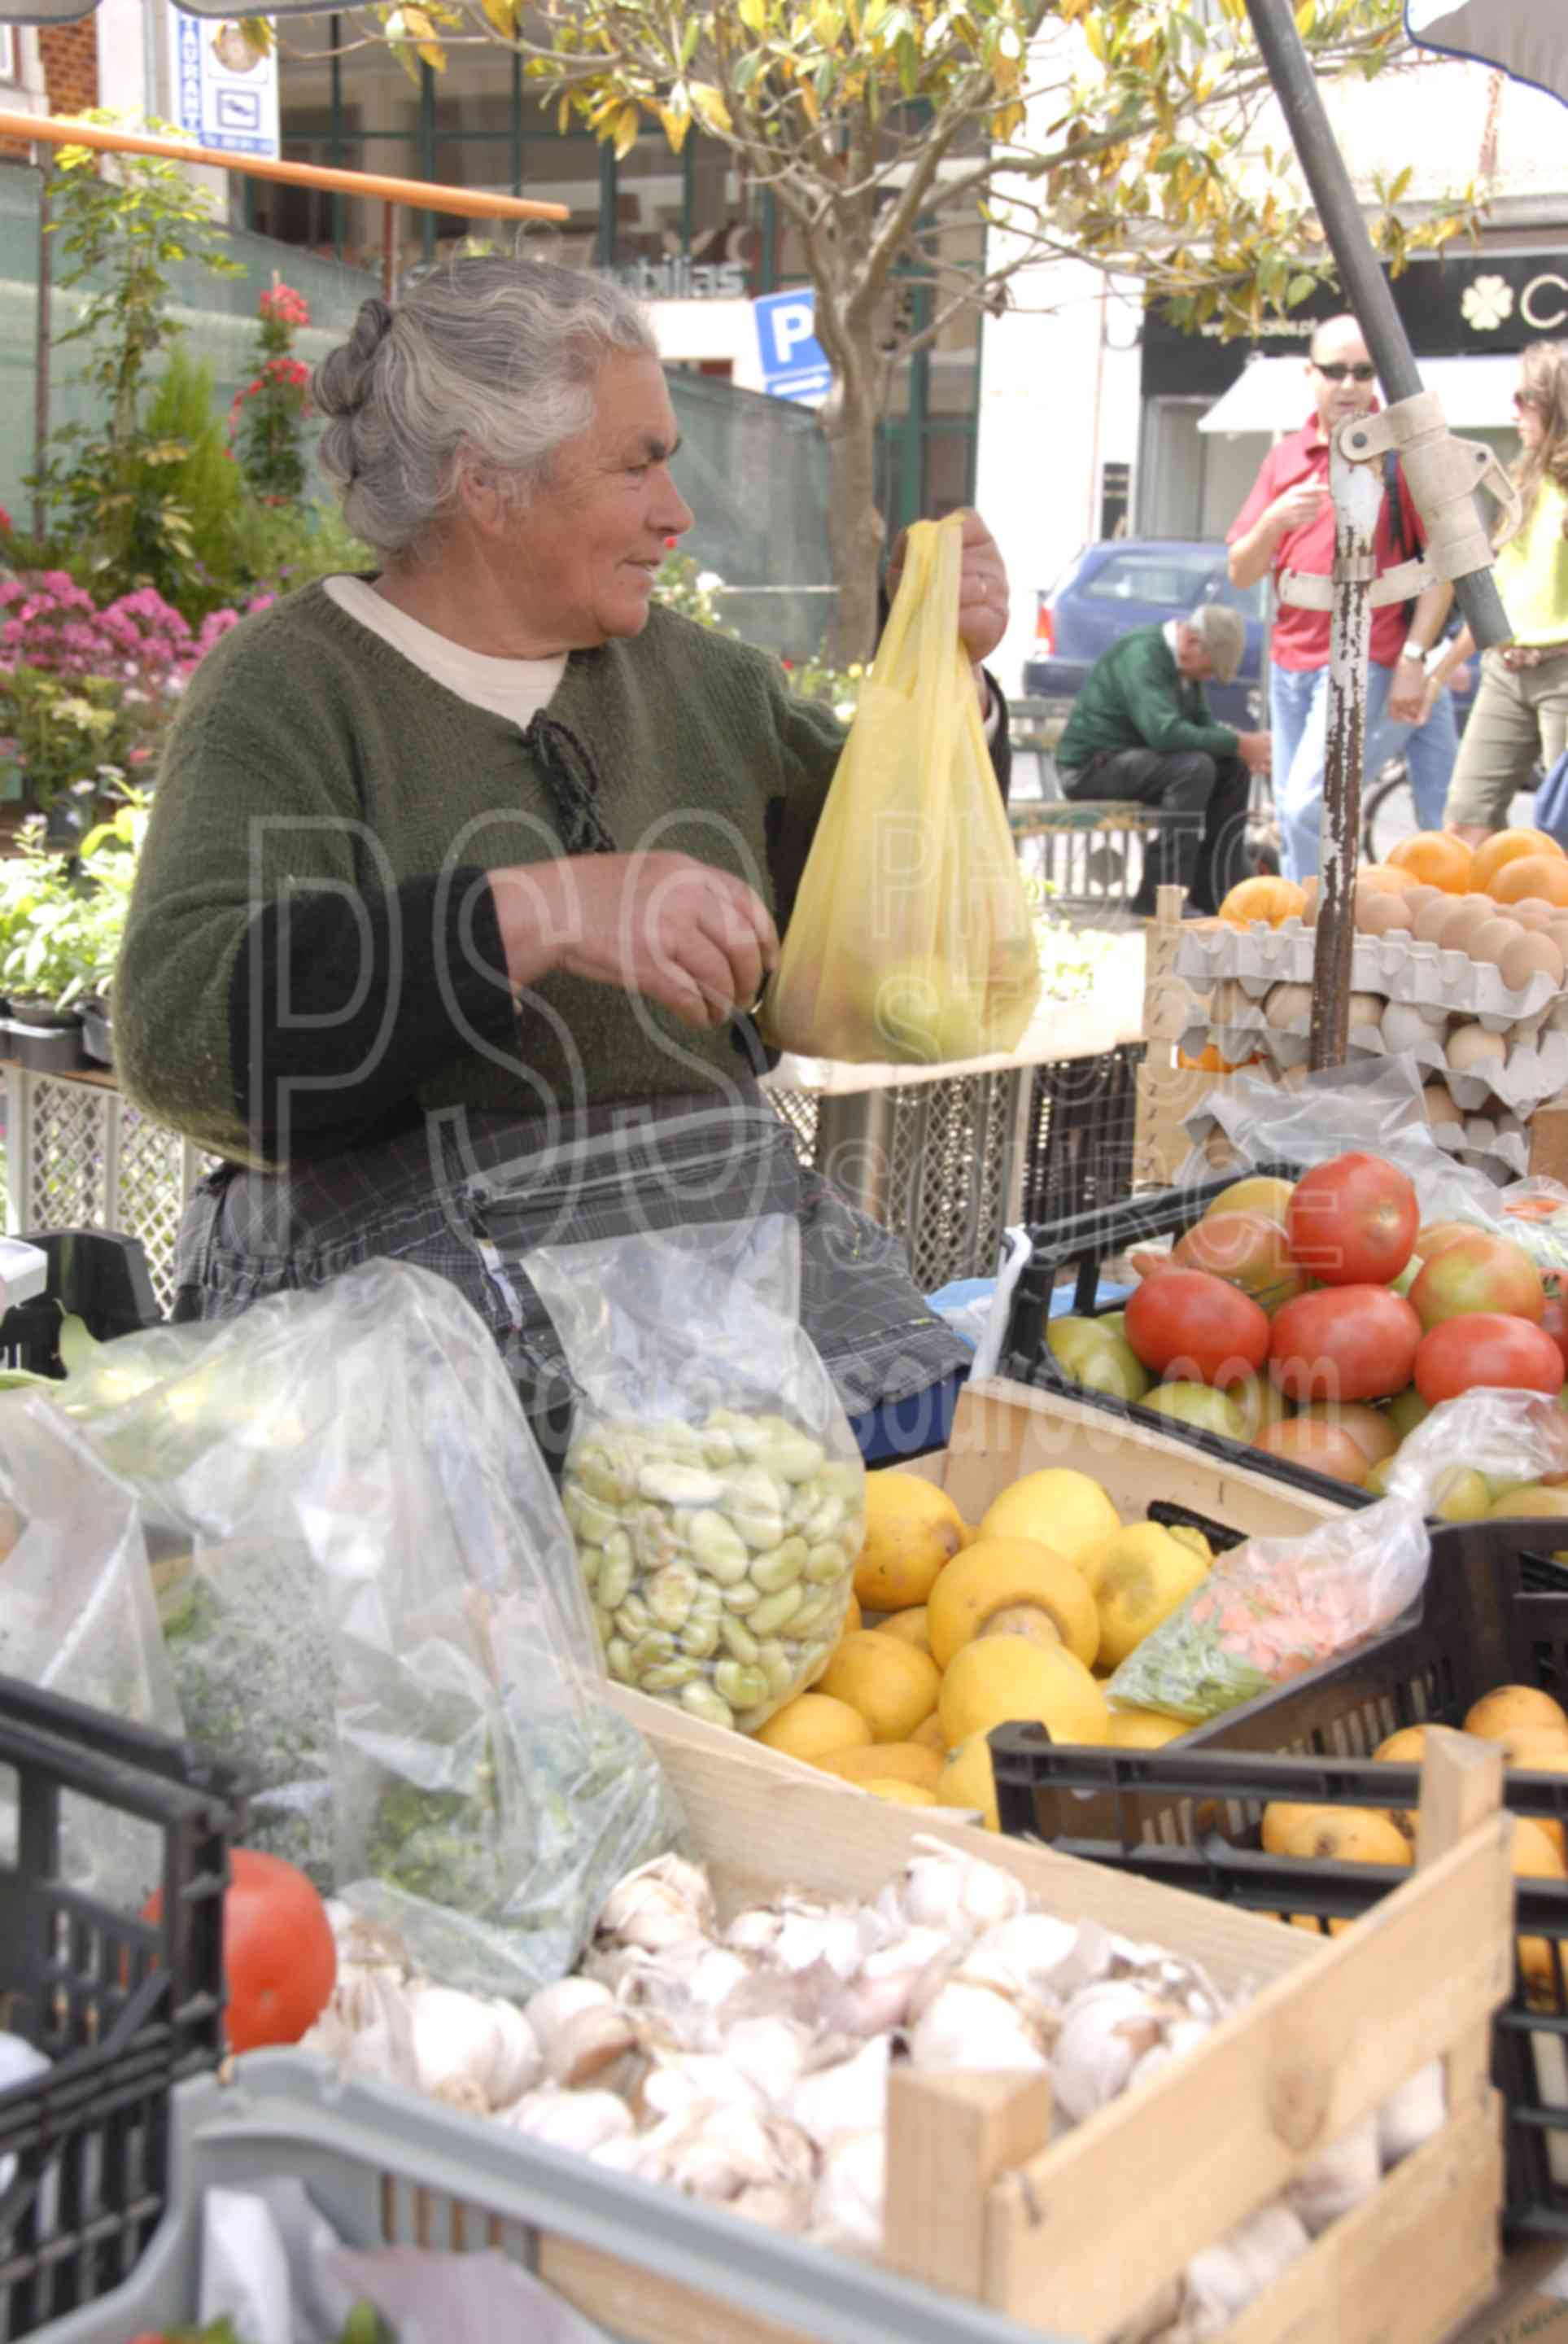 Vegetable Seller,food,seller,vendor,vegetable,woman,market,mercado das caldas